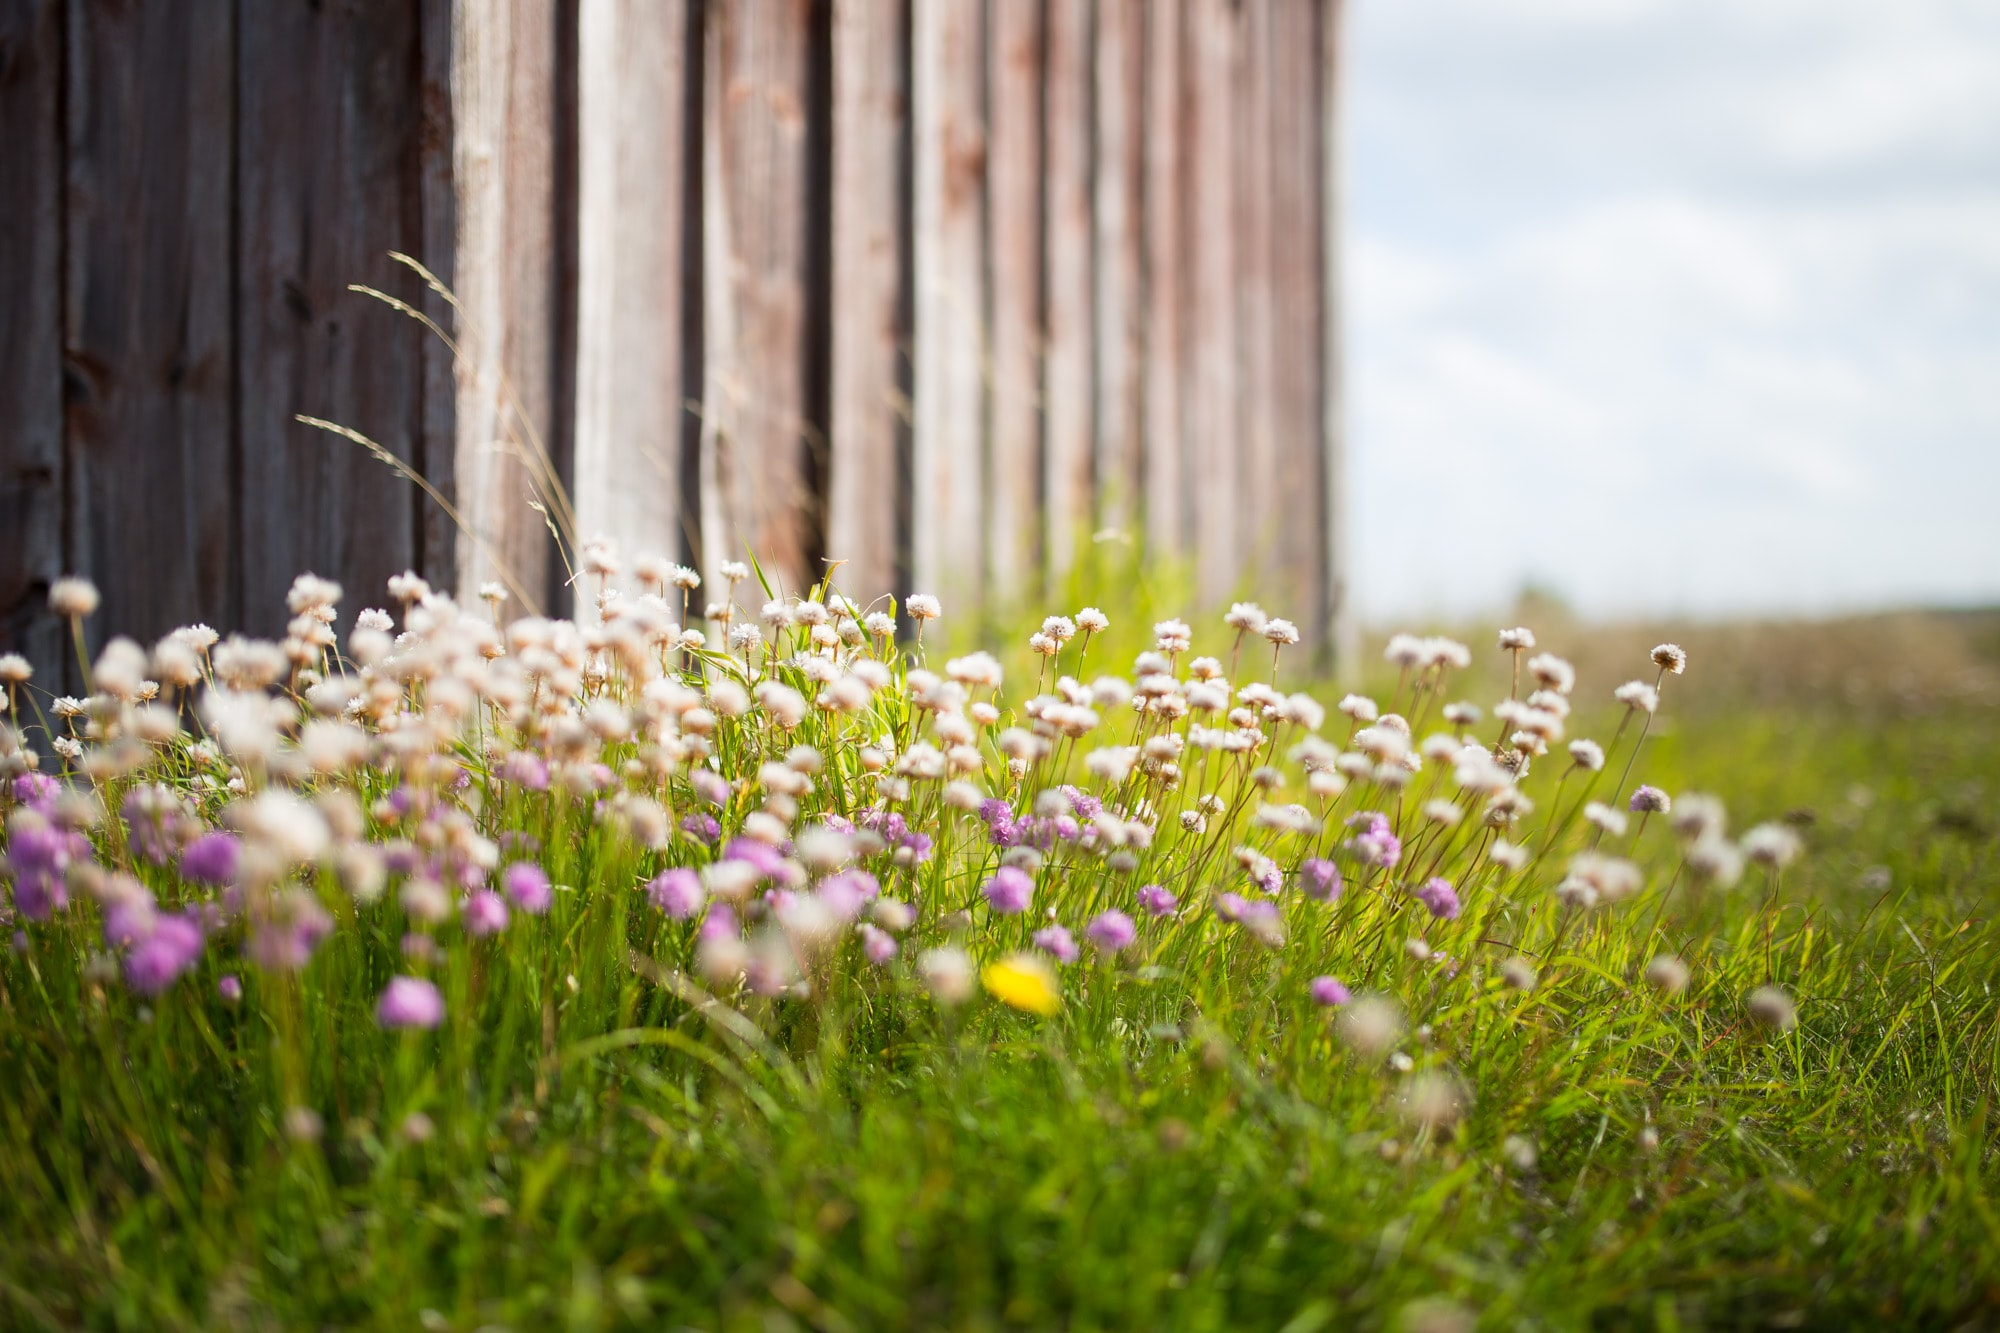 A patch of white and pink wild flowers near a wooden wall